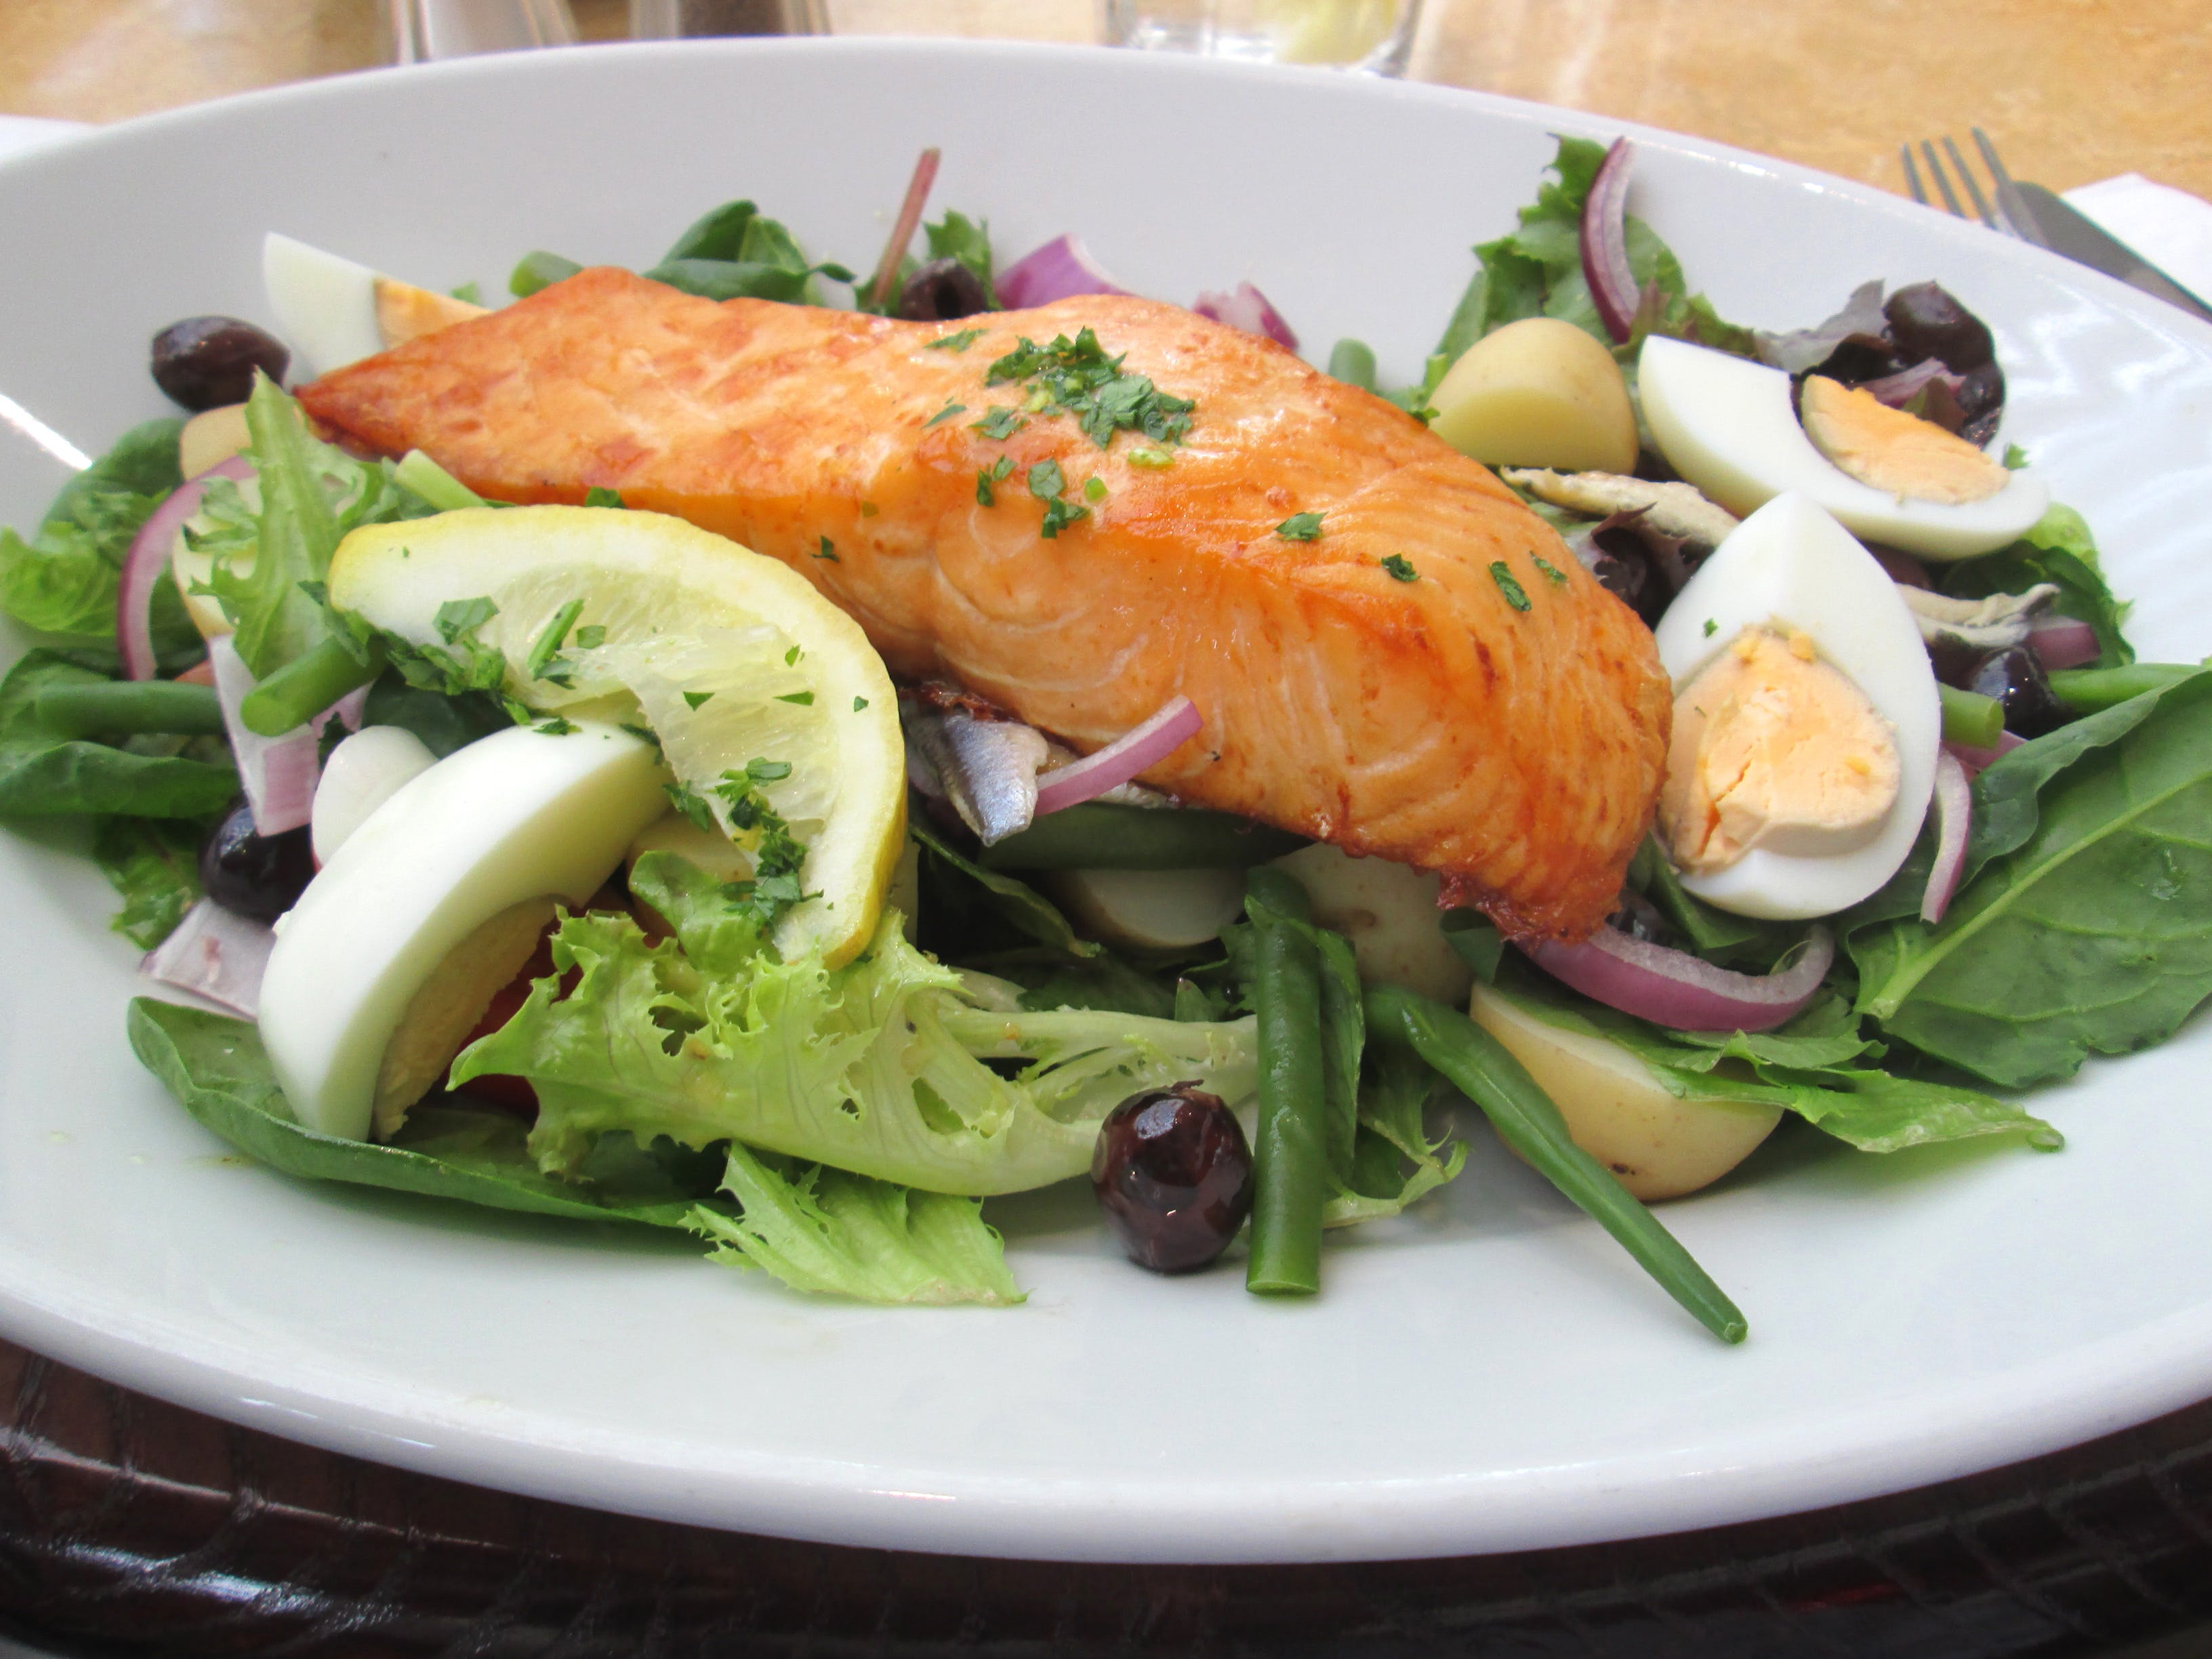 Image of pan fried salmon nicoise dish, salad, eggs, lemon